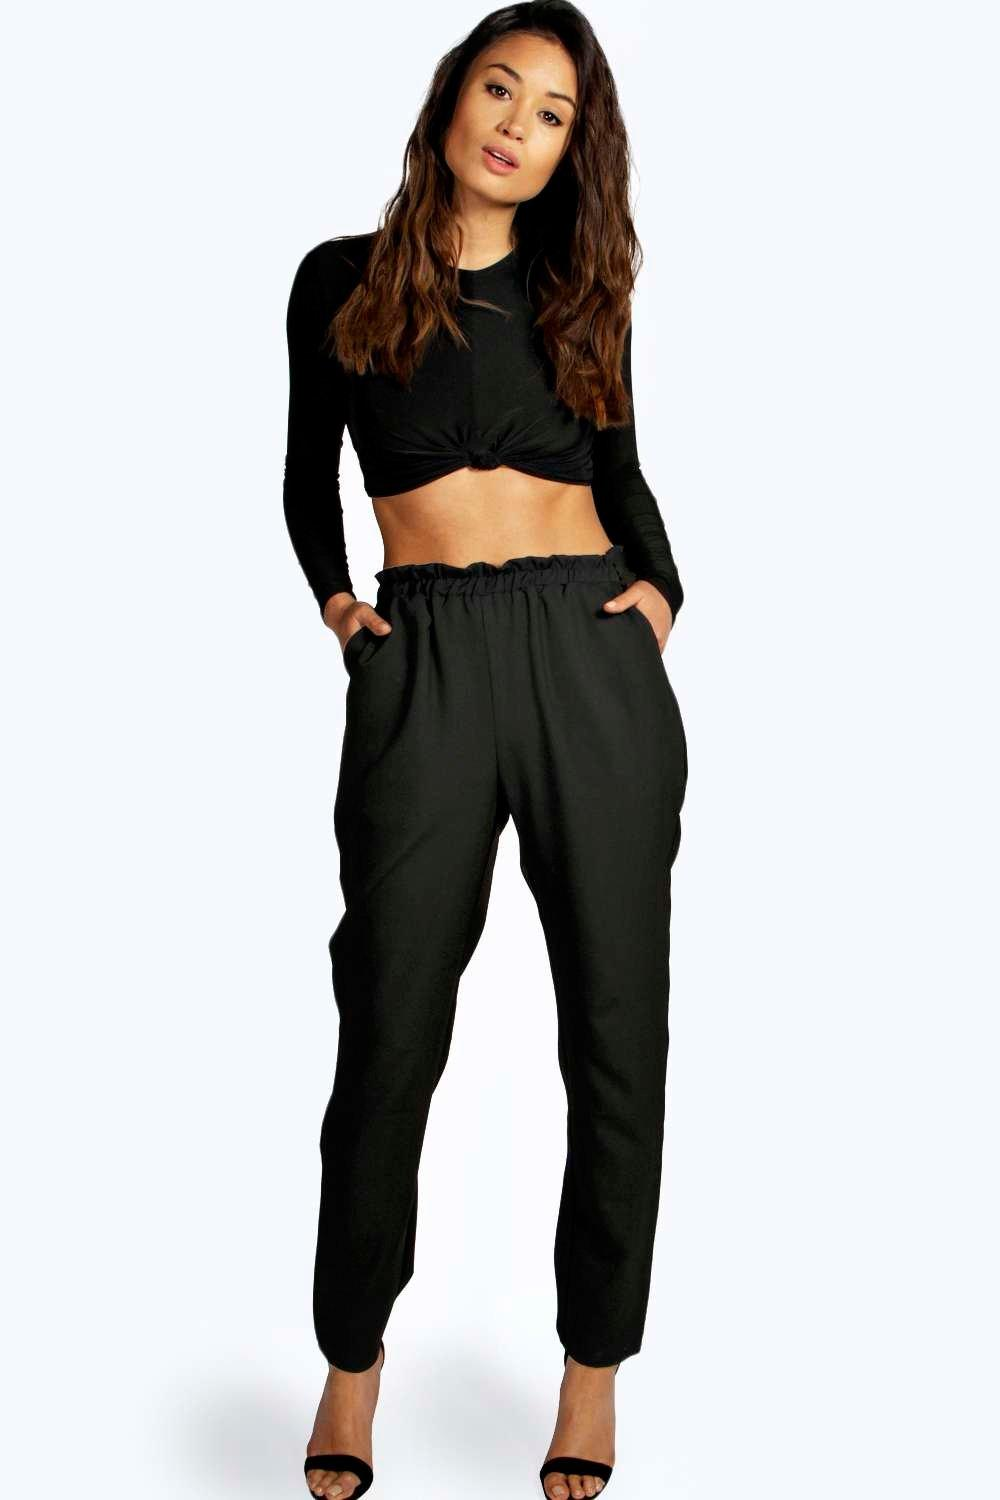 Free shipping on cropped & capri pants for women a jwl-network.ga Shop by rise, material, size and more from the best brands. Free shipping & returns.